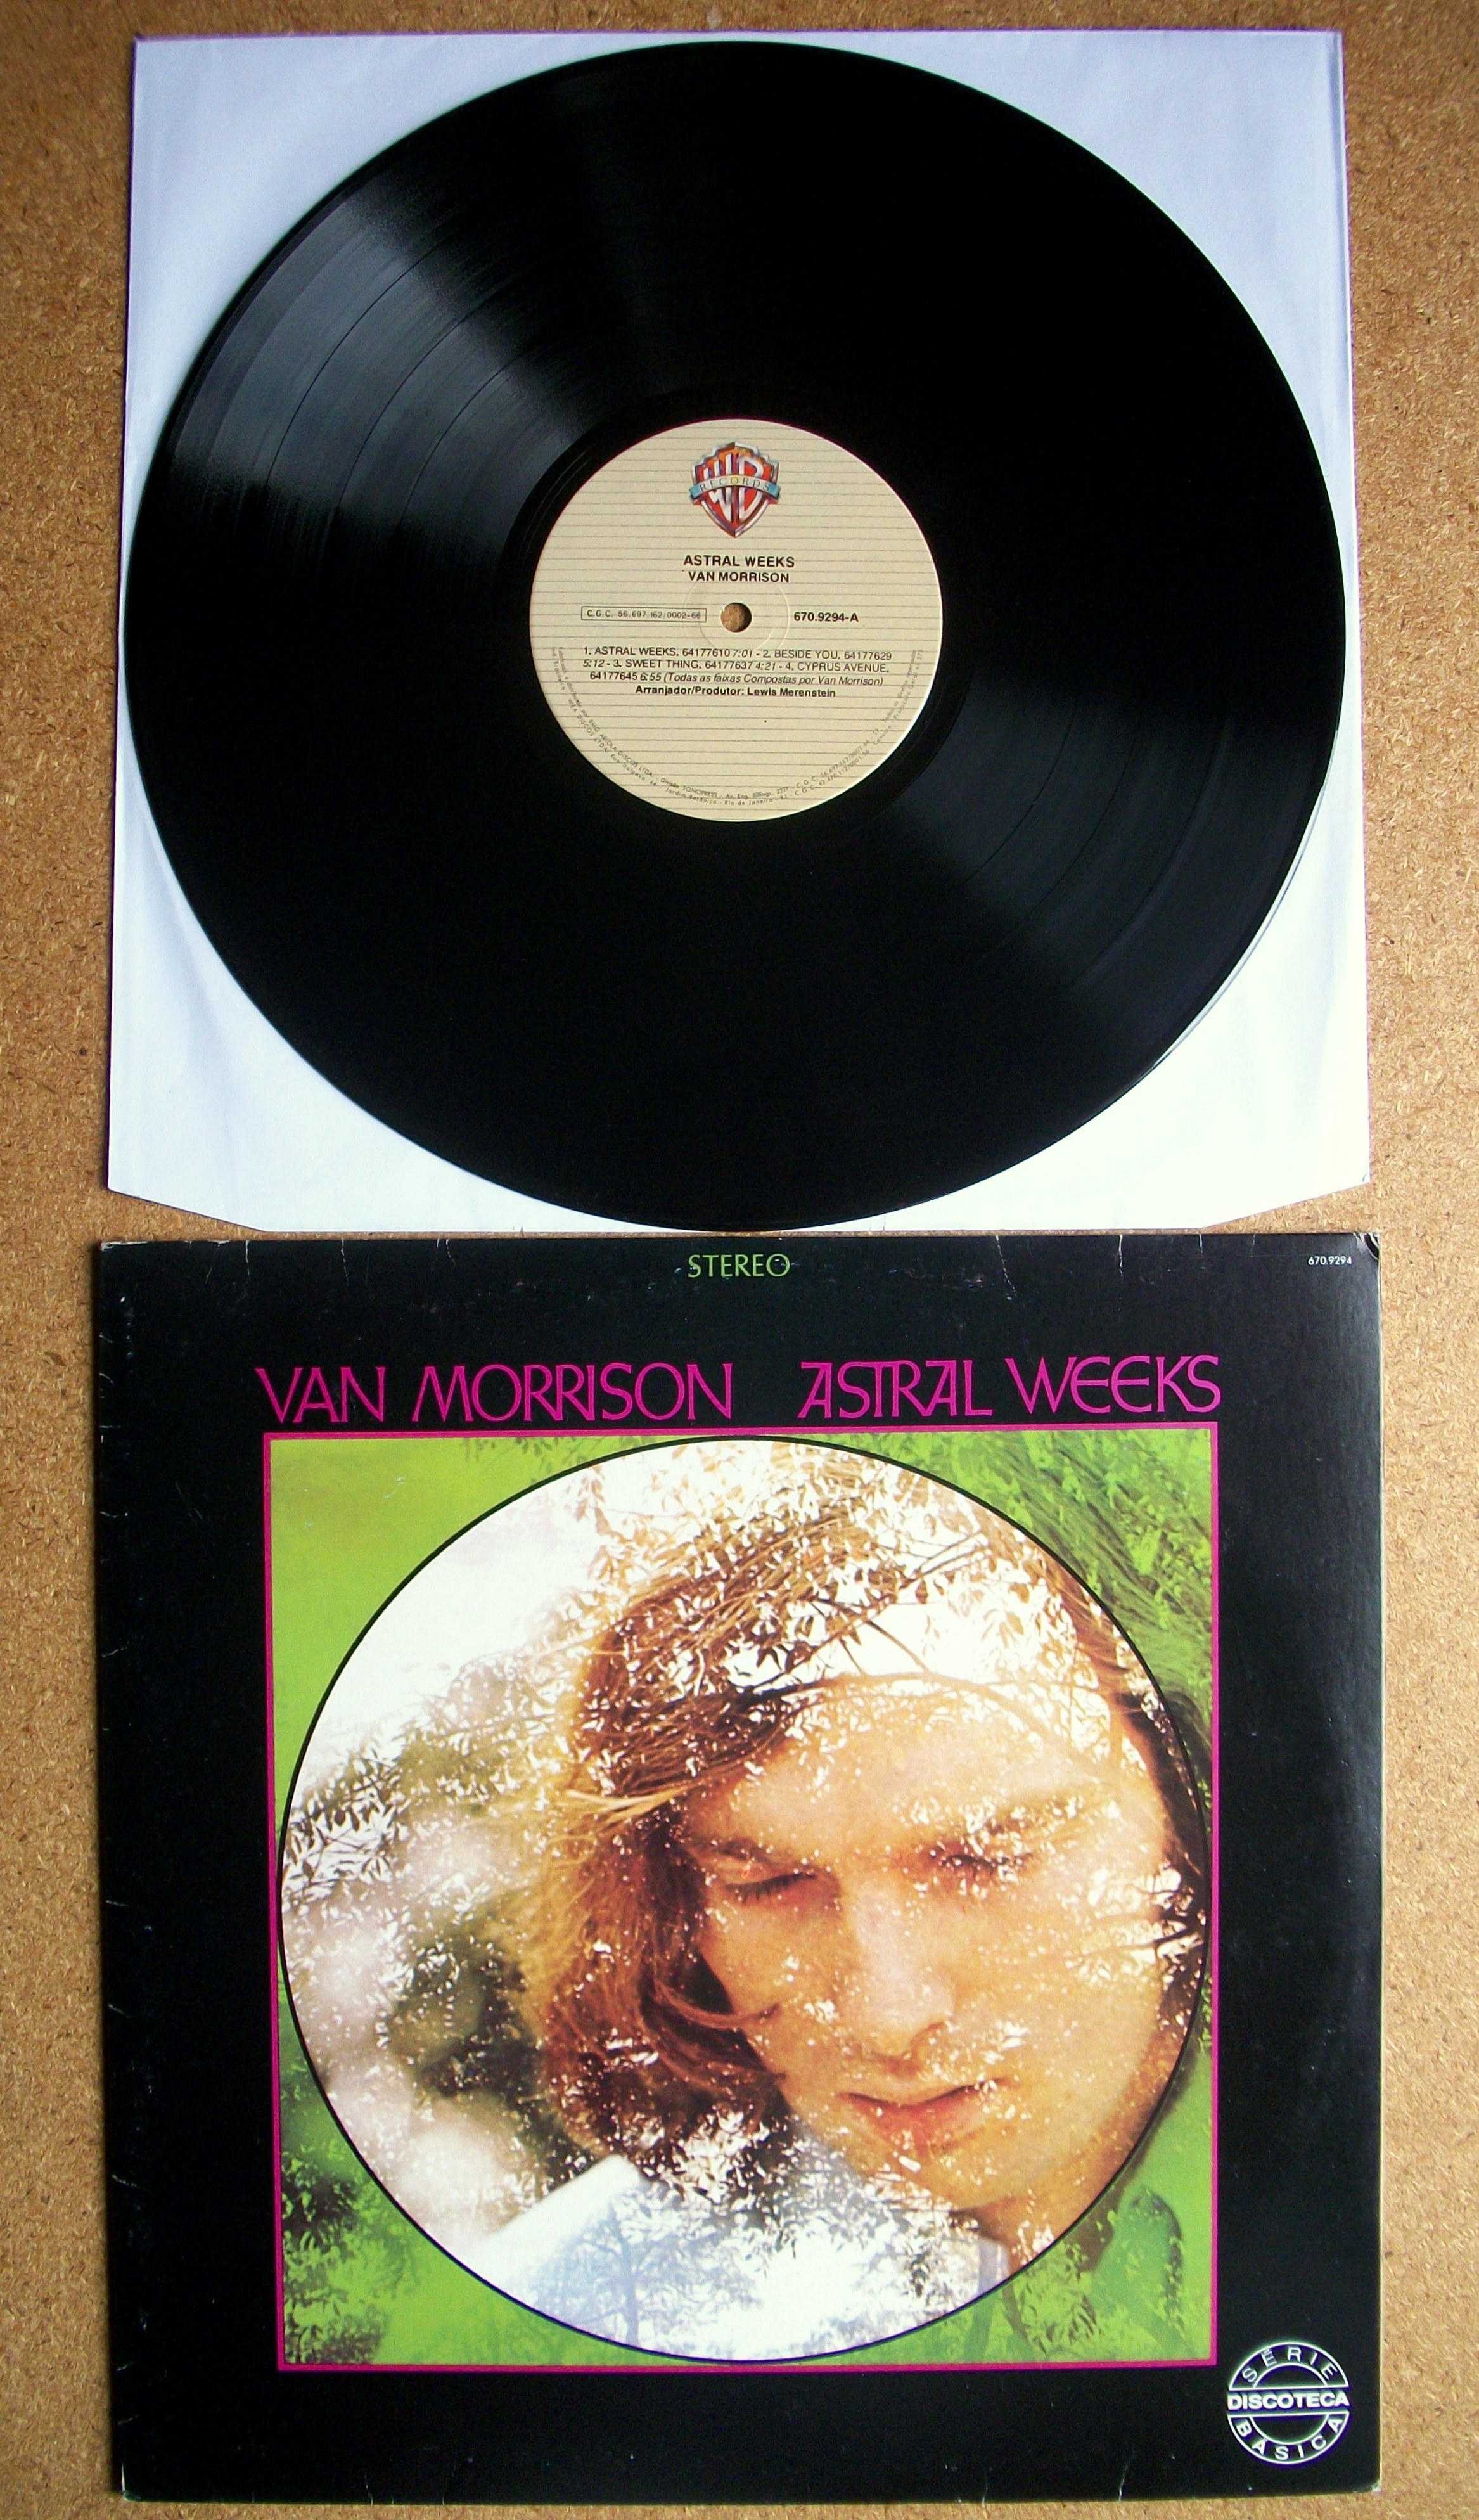 sinister vinyl collection van morrison astral weeks  artista van morrison